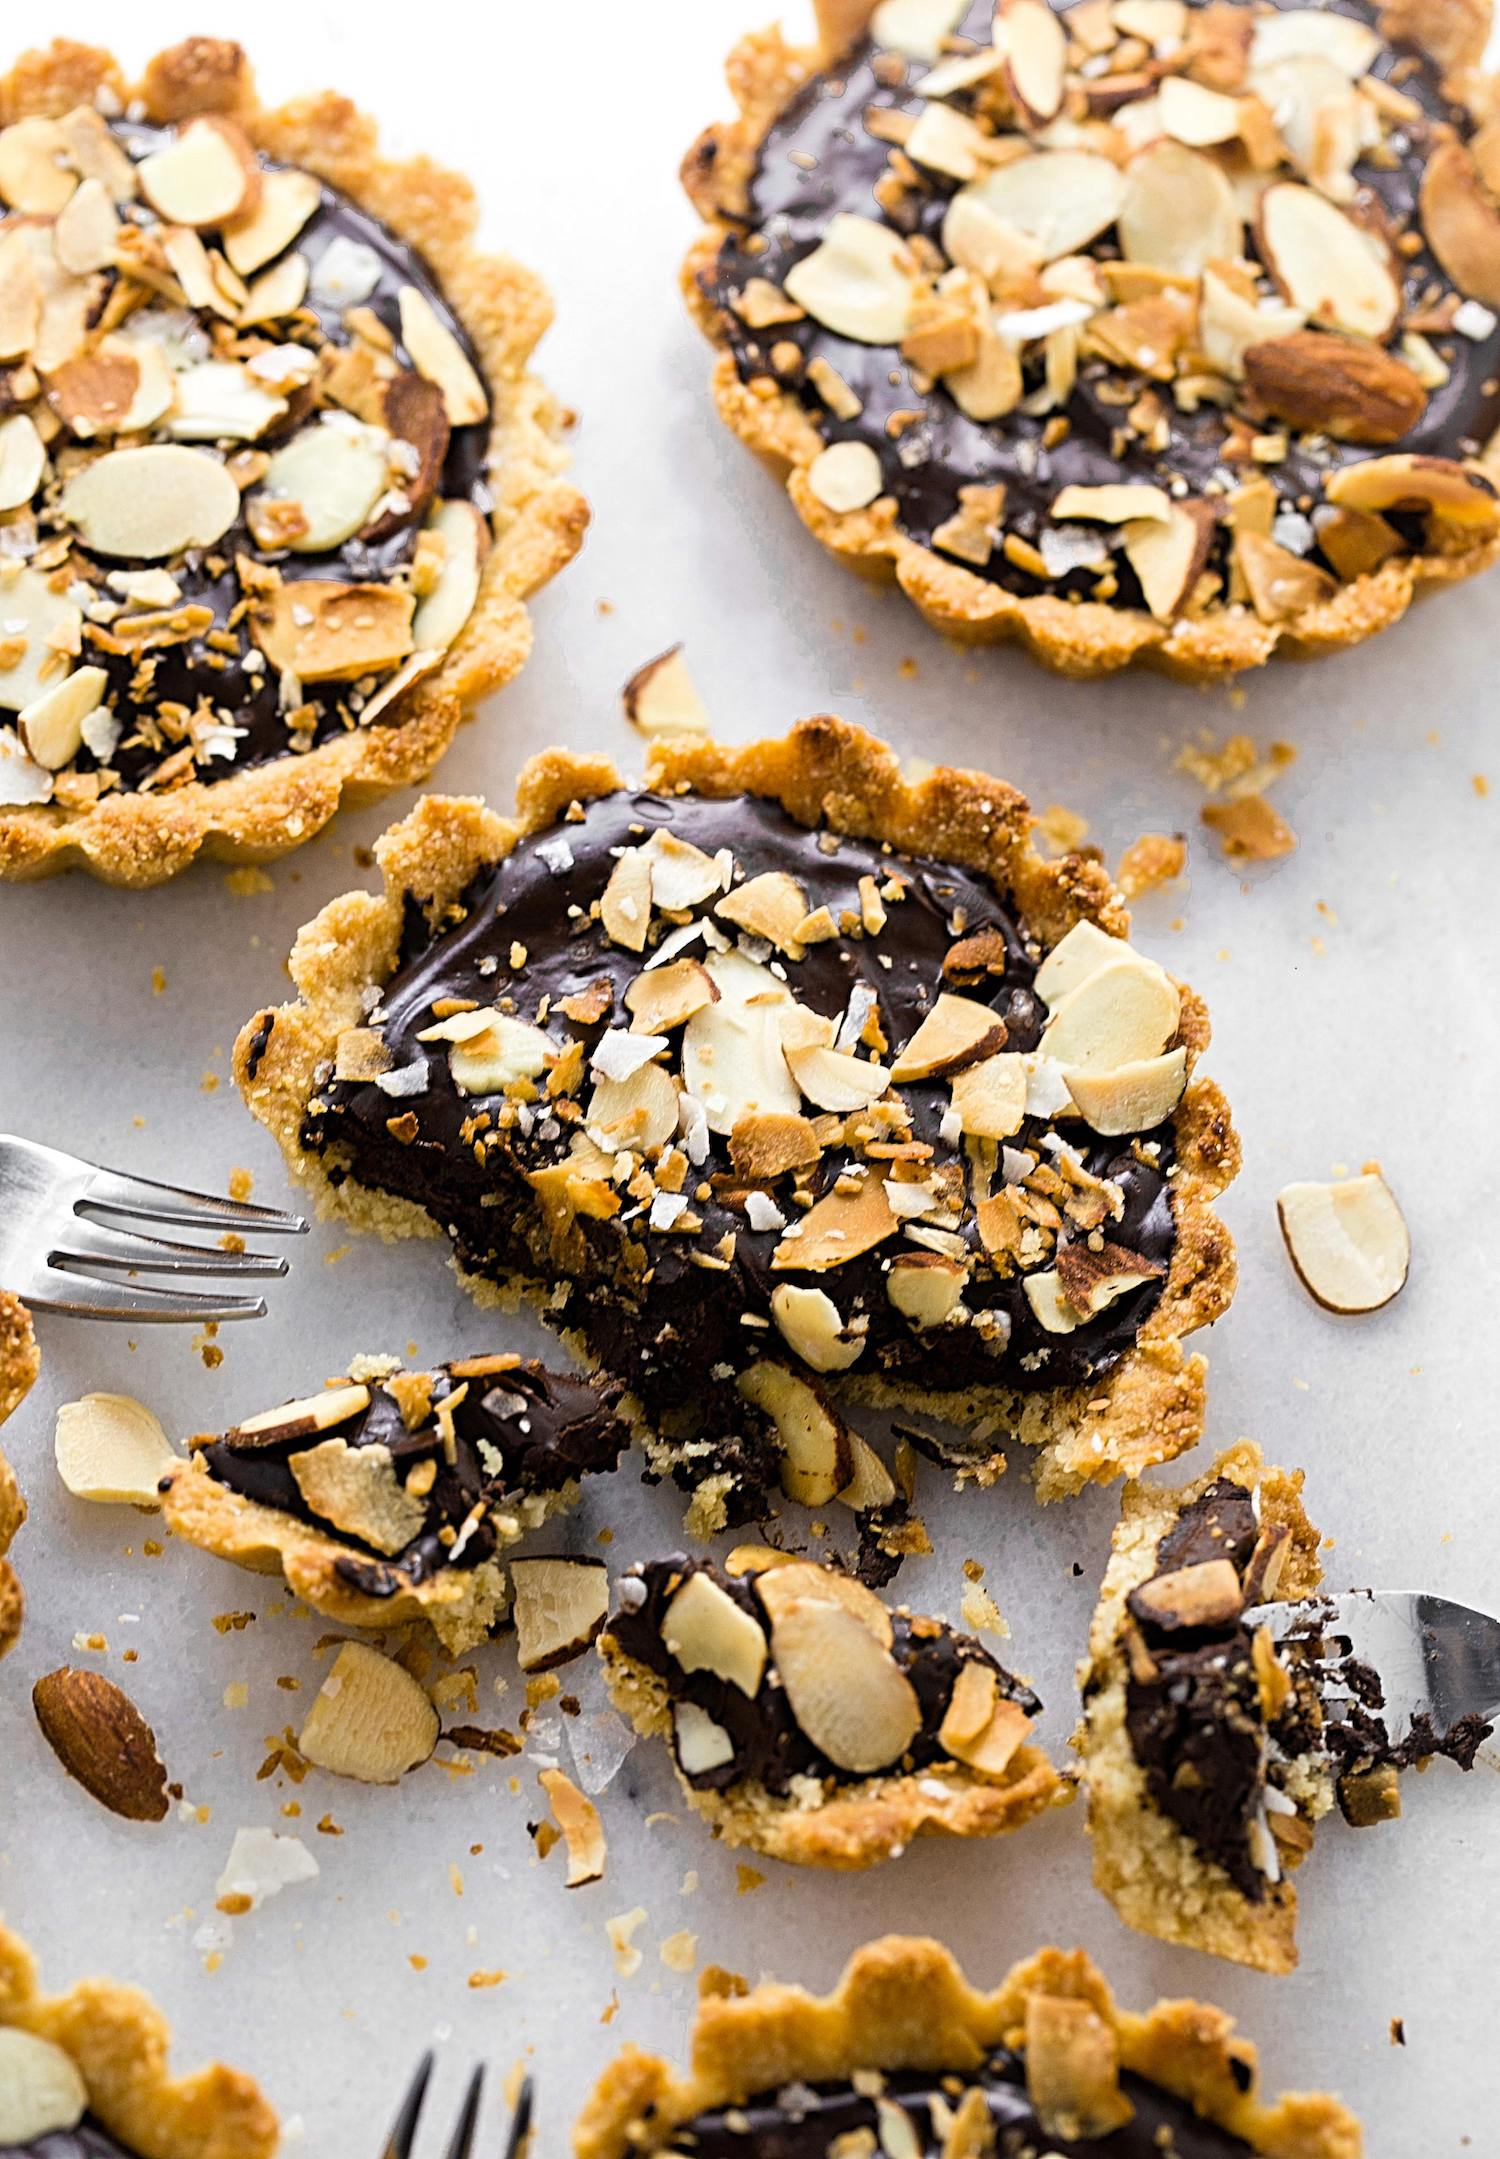 Gluten-Free Chocolate Almond Tartlets: almond flour and coconut crust filled with a creamy and rich chocolate ganache. Dairy and gluten-free! | TrufflesandTrends.com